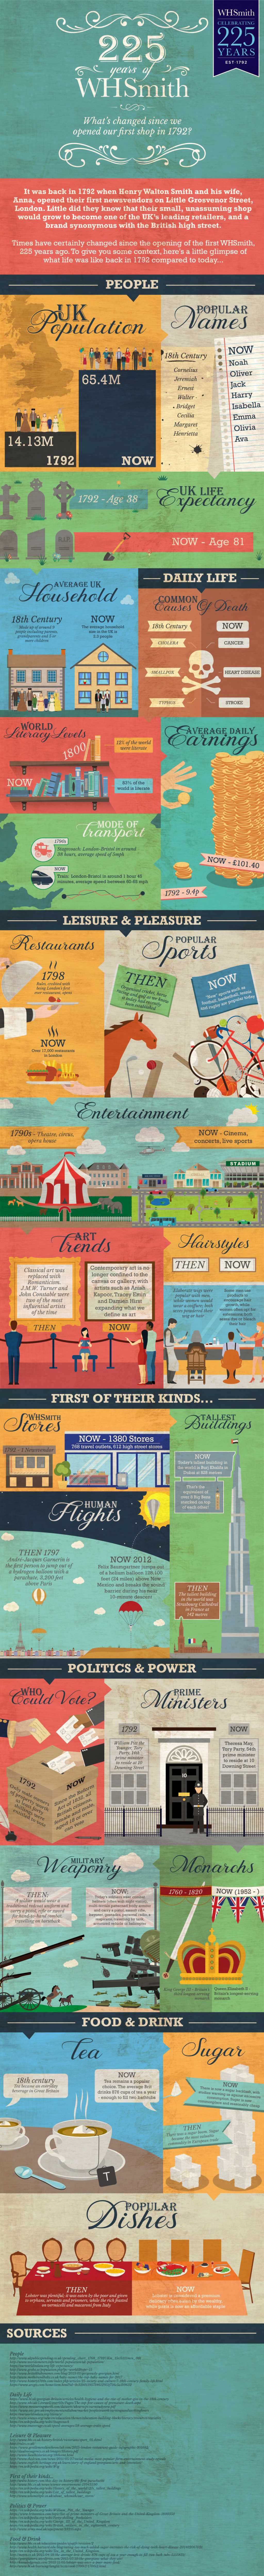 WH Smith Then & Now Infographic